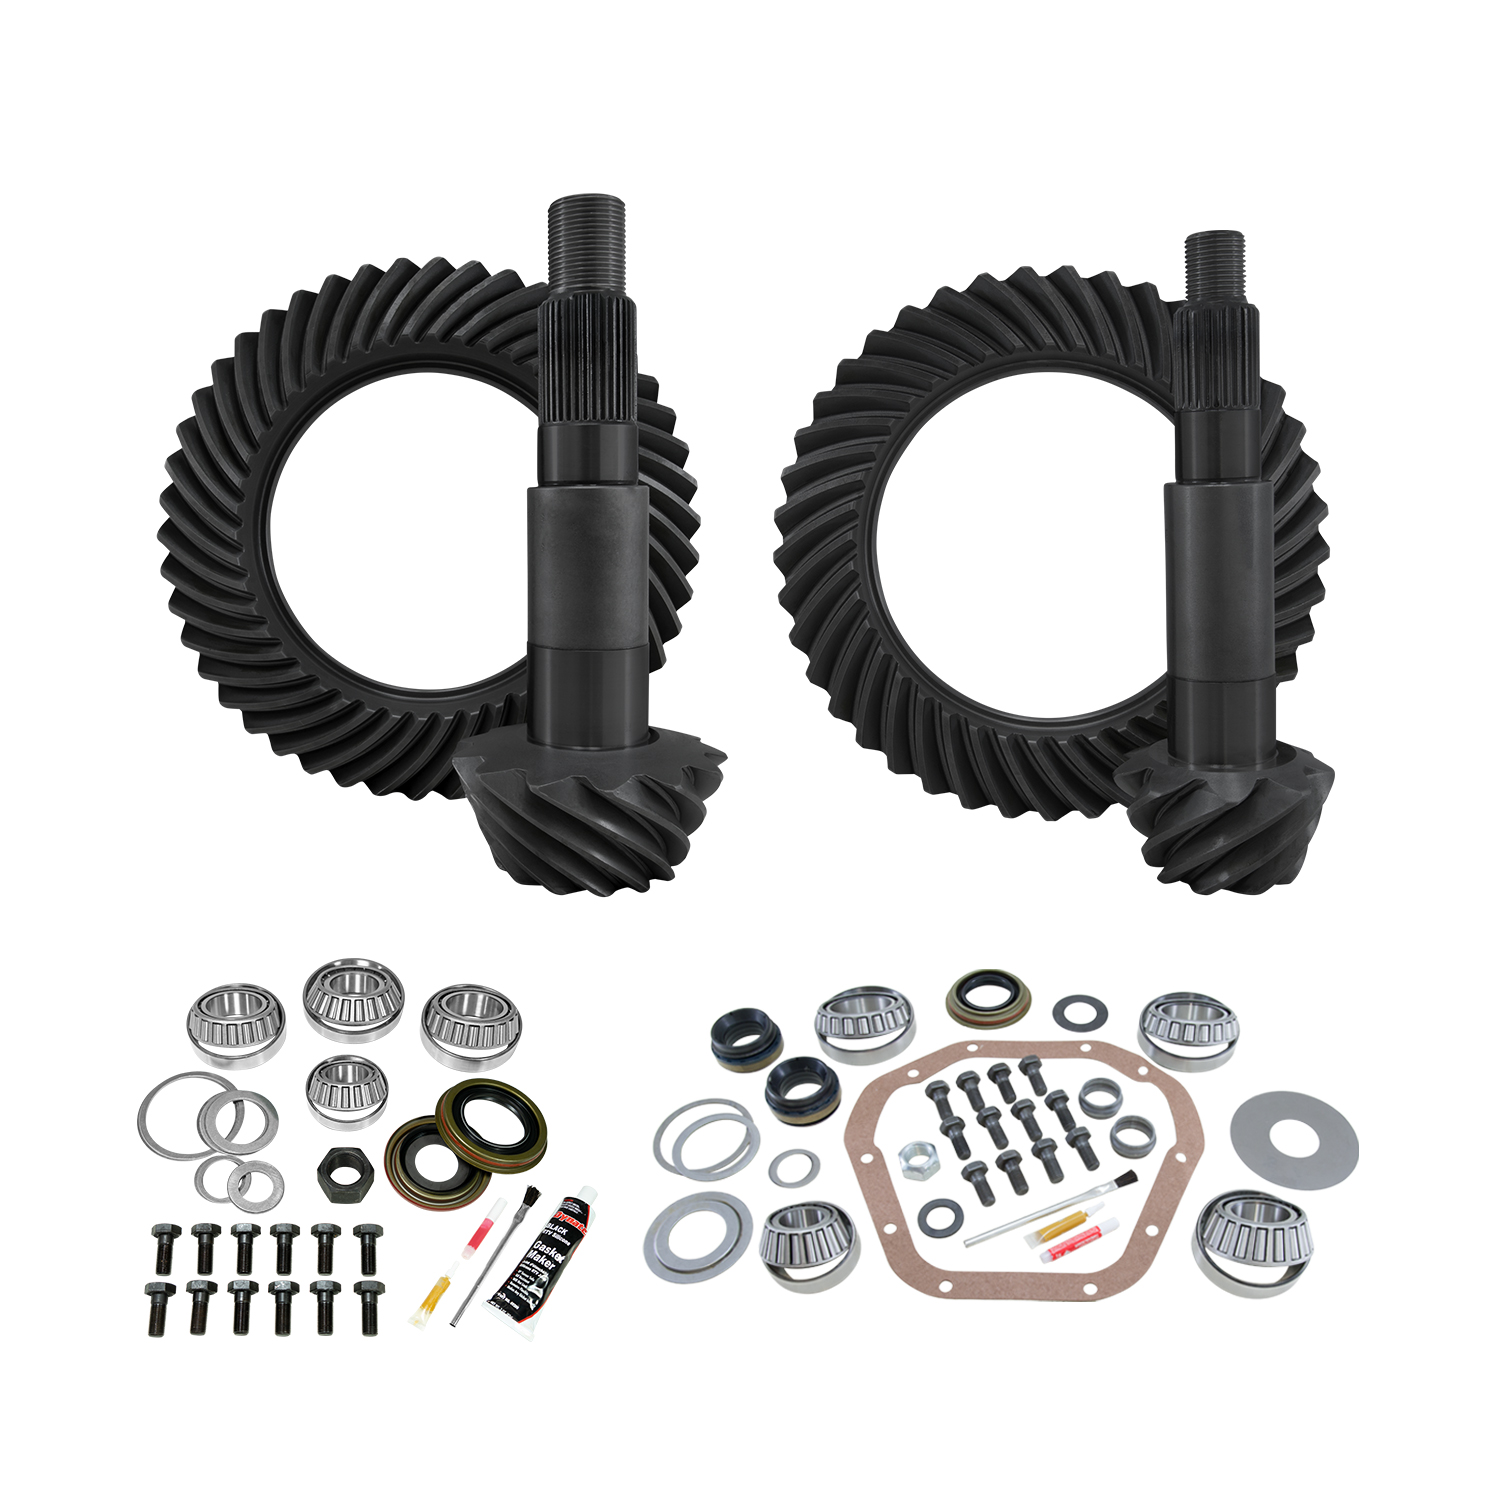 YGK143 - Yukon Complete Gear and Kit Pakage for F350 Dana 80 Rear & Dana 60 Front, with 3:73 Gear Ratio